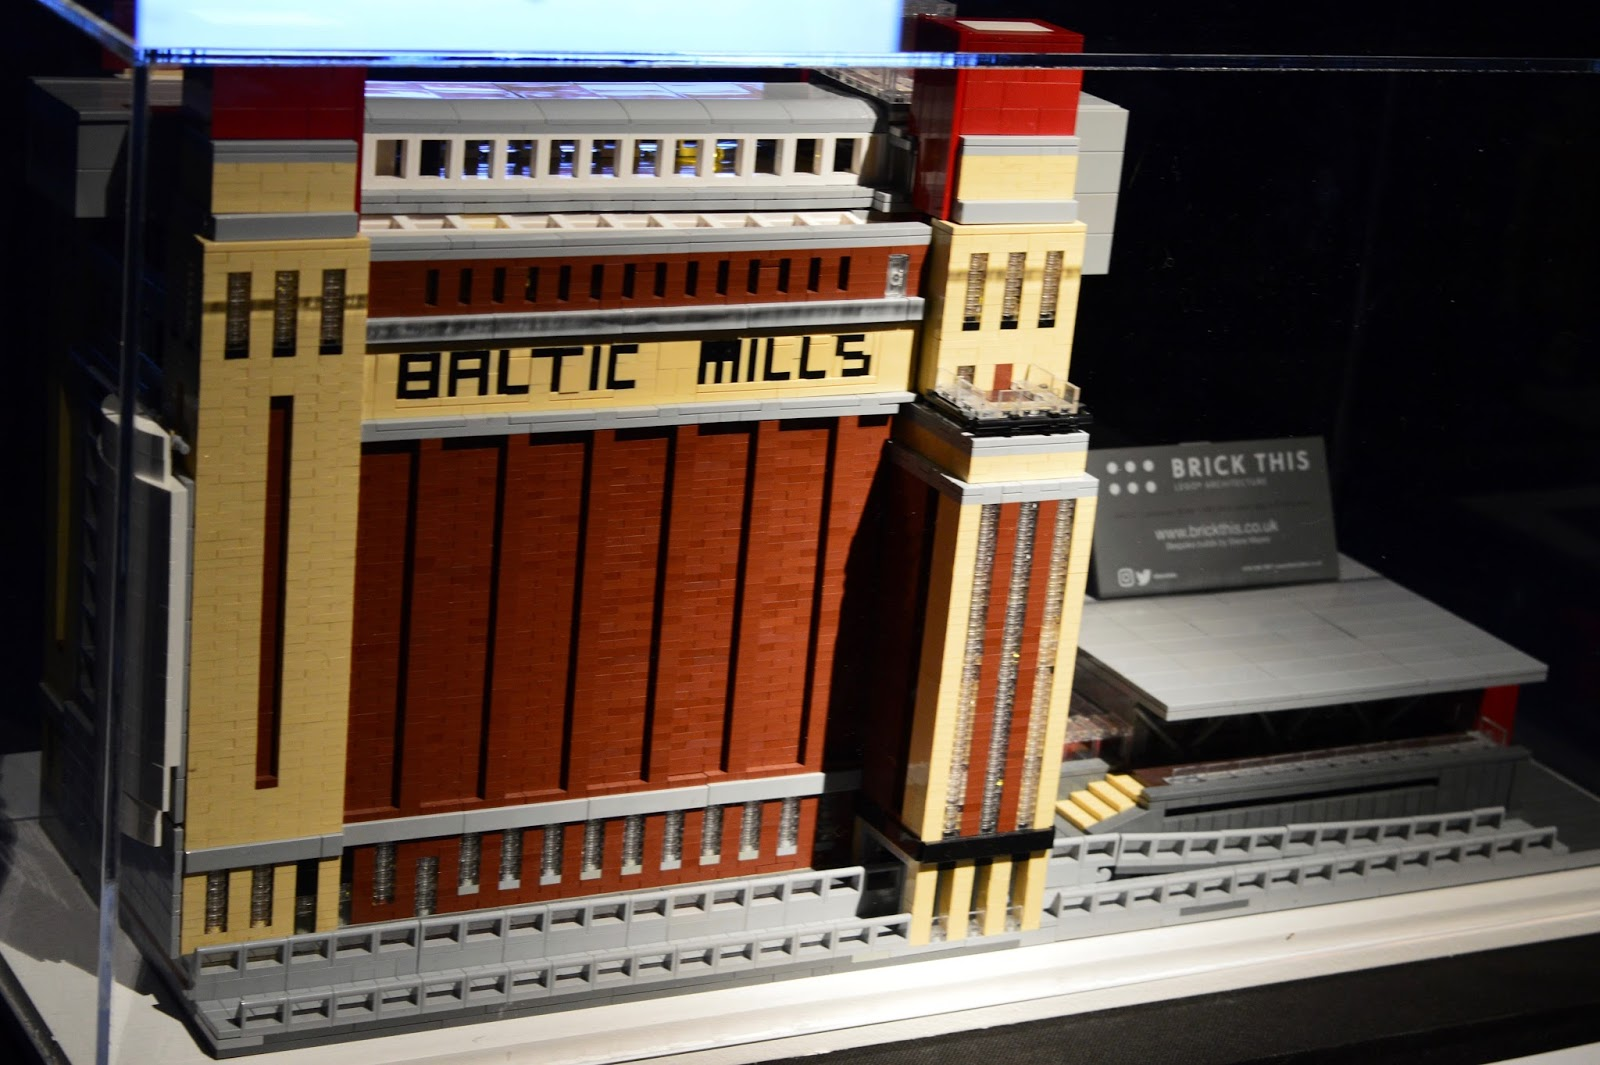 Brick History & North East Landmarks | New Lego Exhibitions at Life Science Centre, Newcastle | A Review - A Lego Baltic Mill